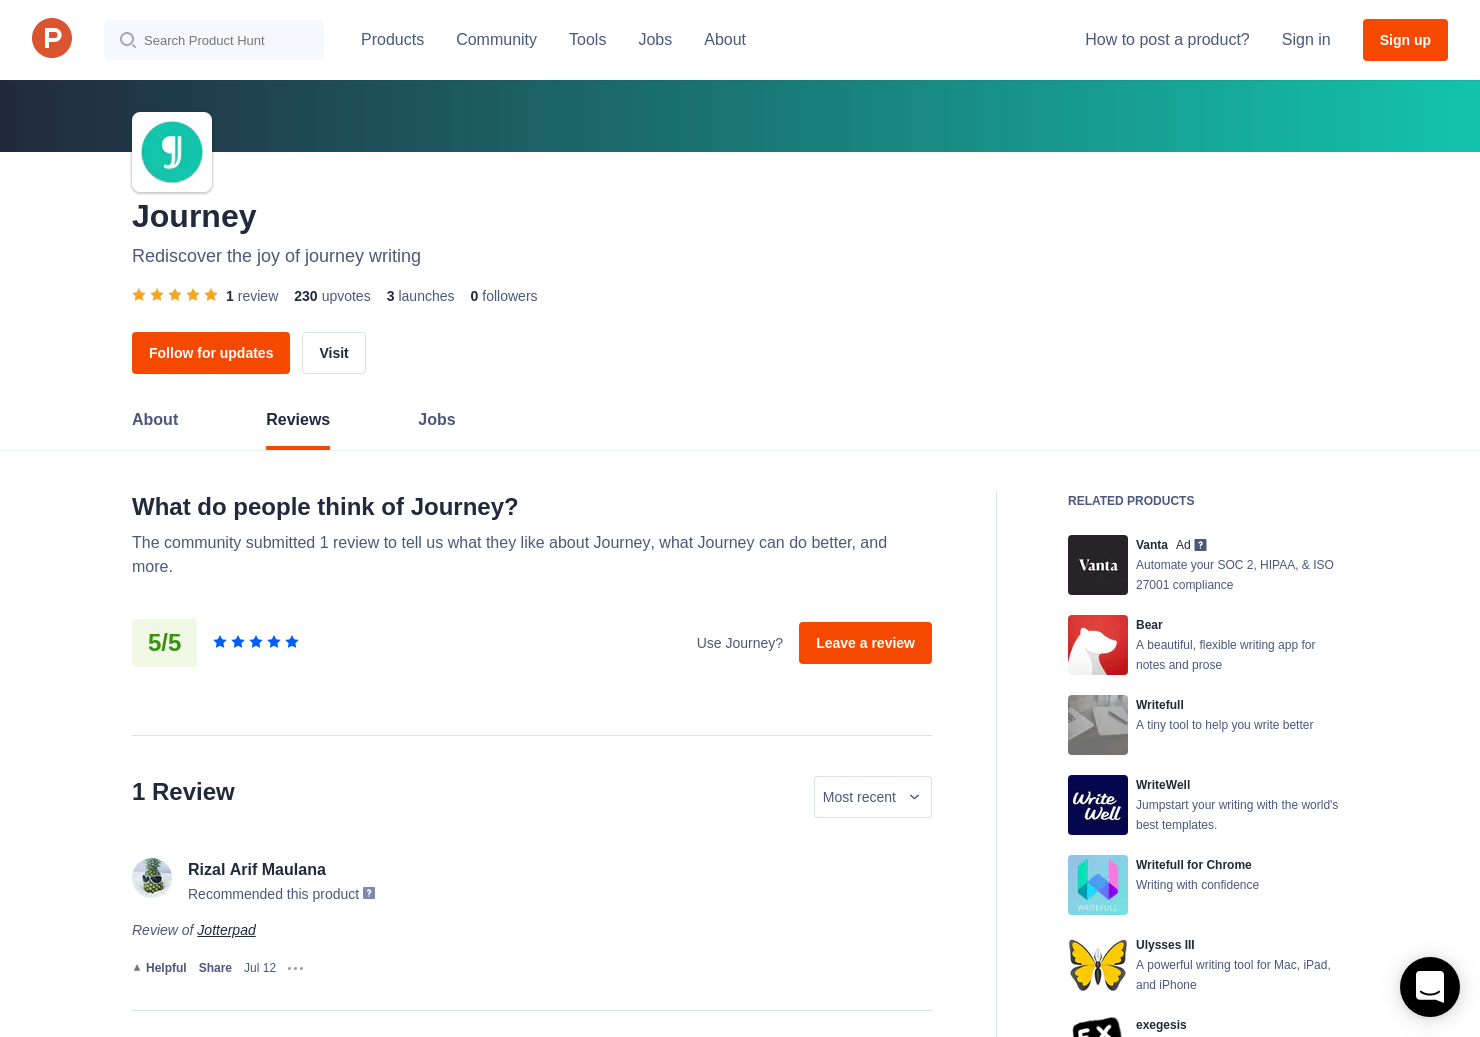 Jotterpad Reviews - Pros, Cons and Rating | Product Hunt